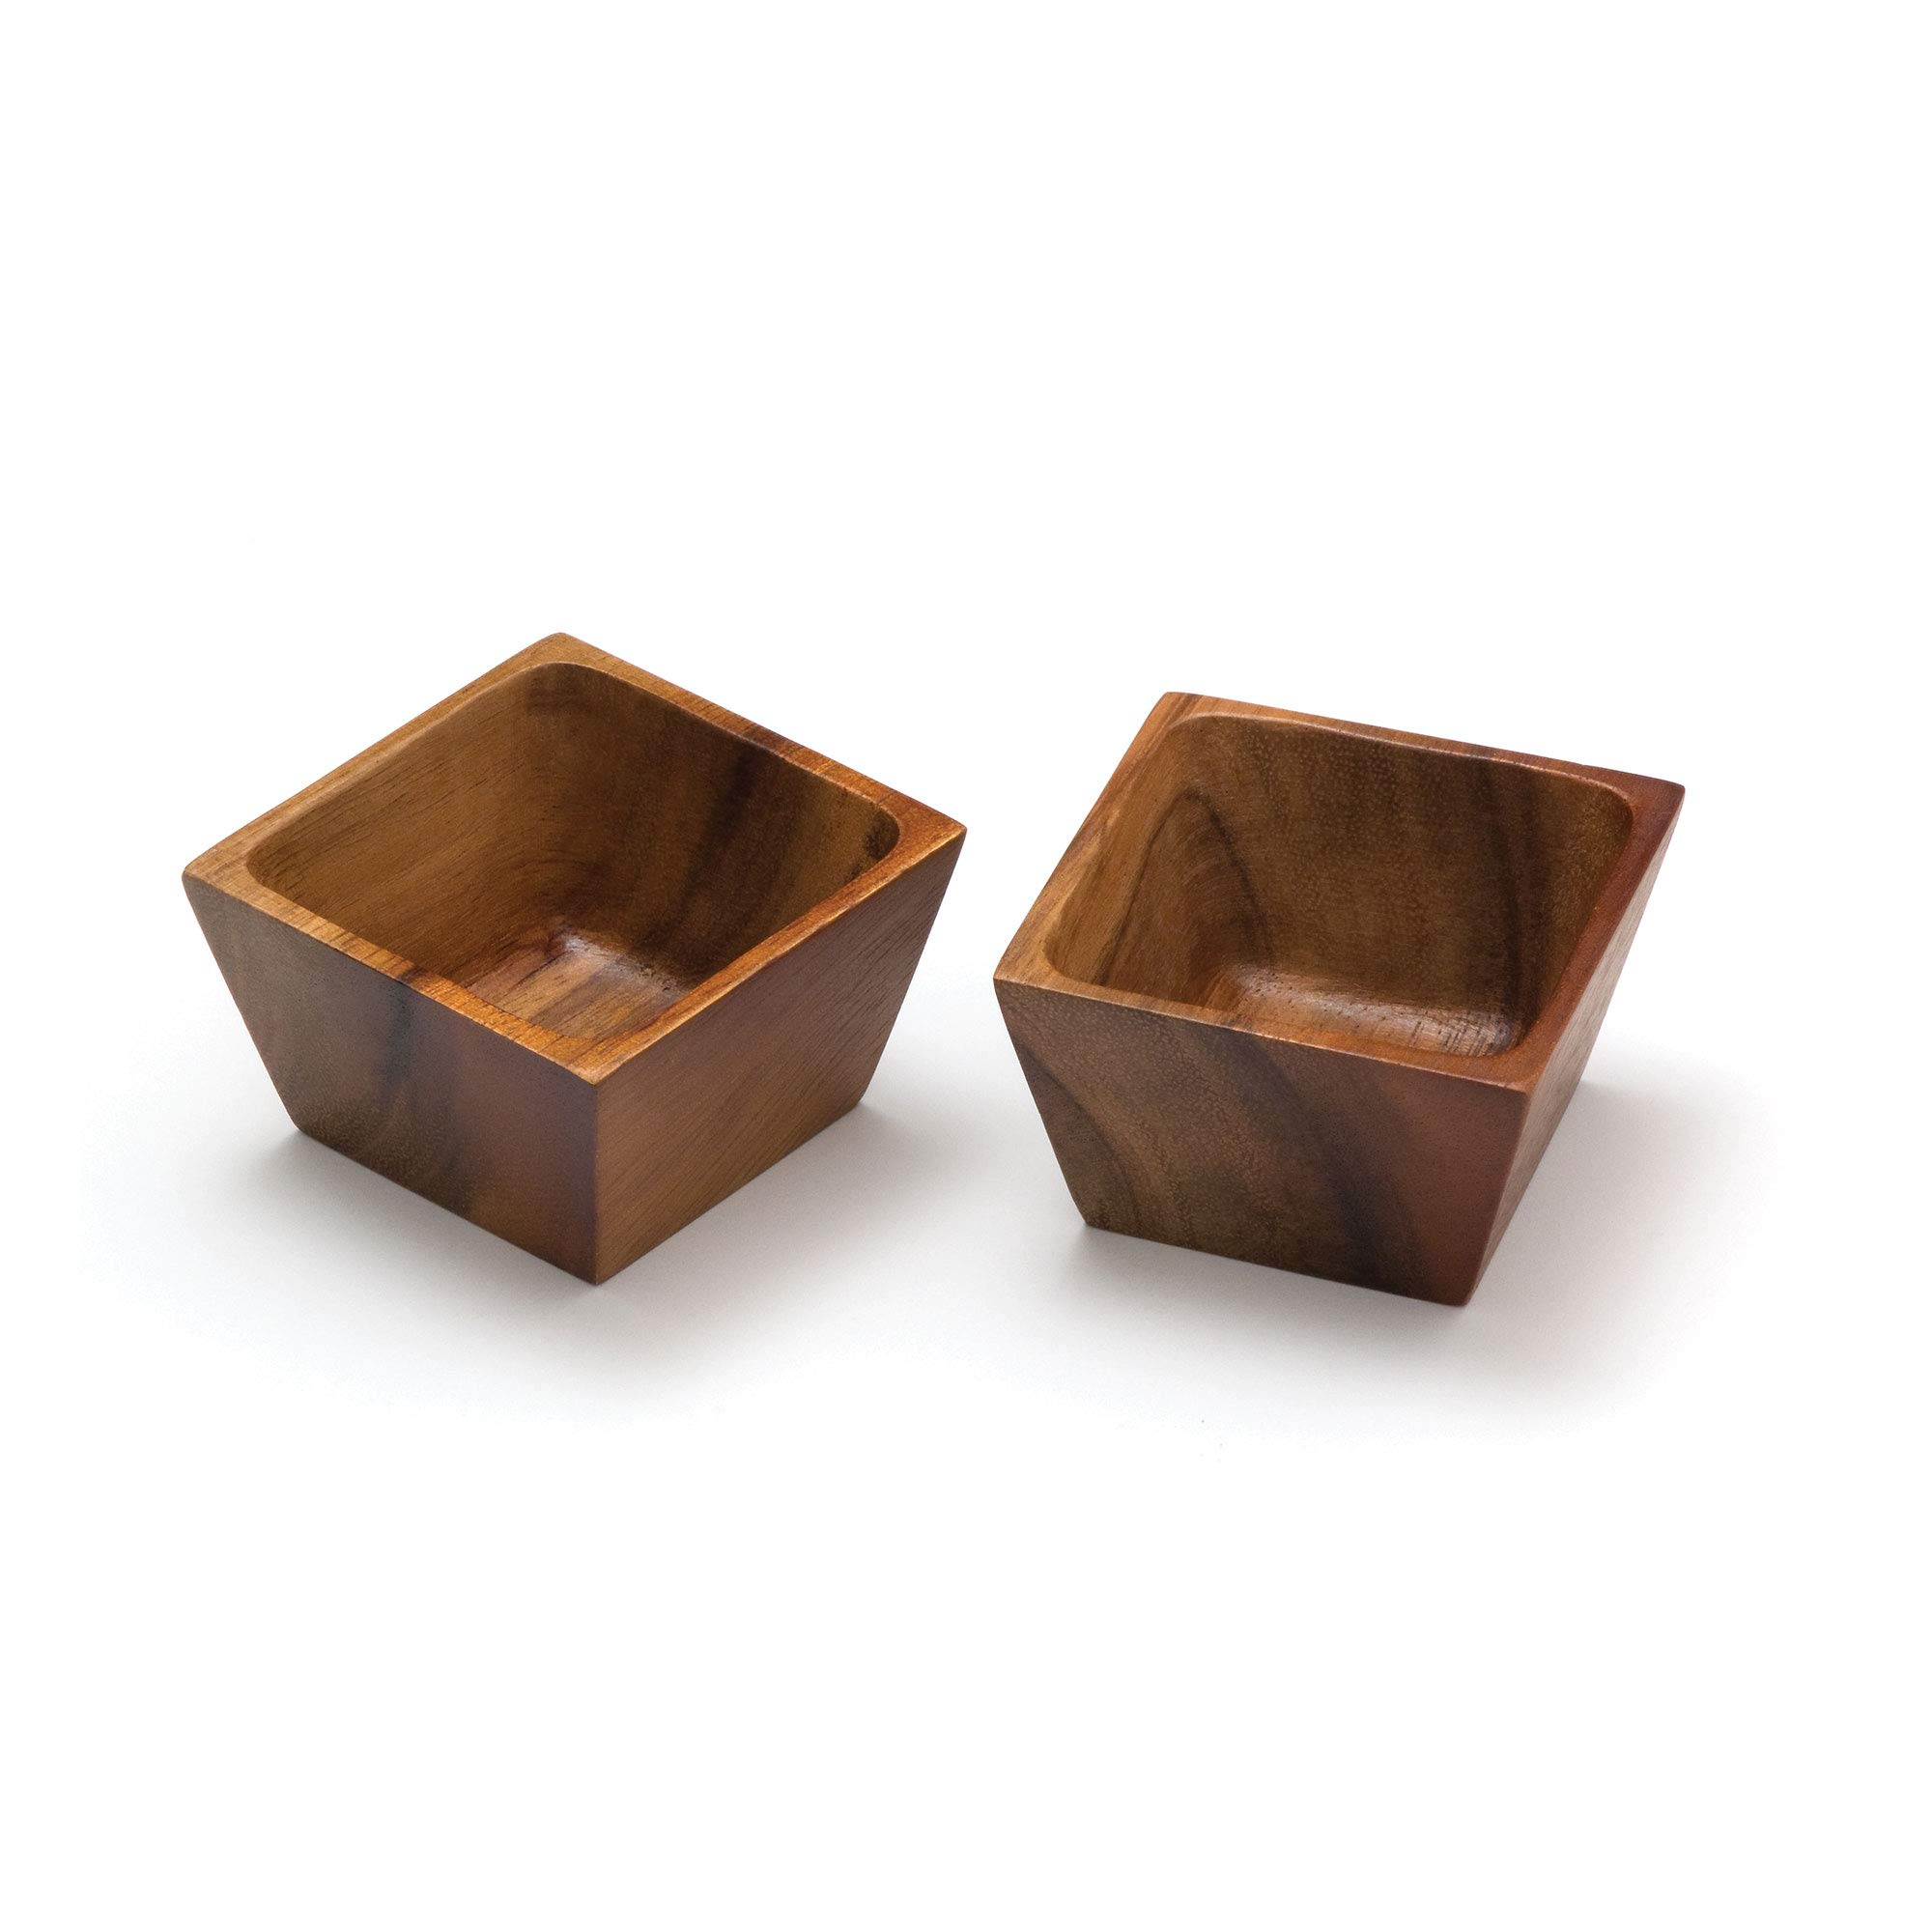 Lipper International 1100-2 Acacia Wood Square Salt Pinch or Serving Bowls, 3'' x 3'' x 2-1/2'', Set of 2